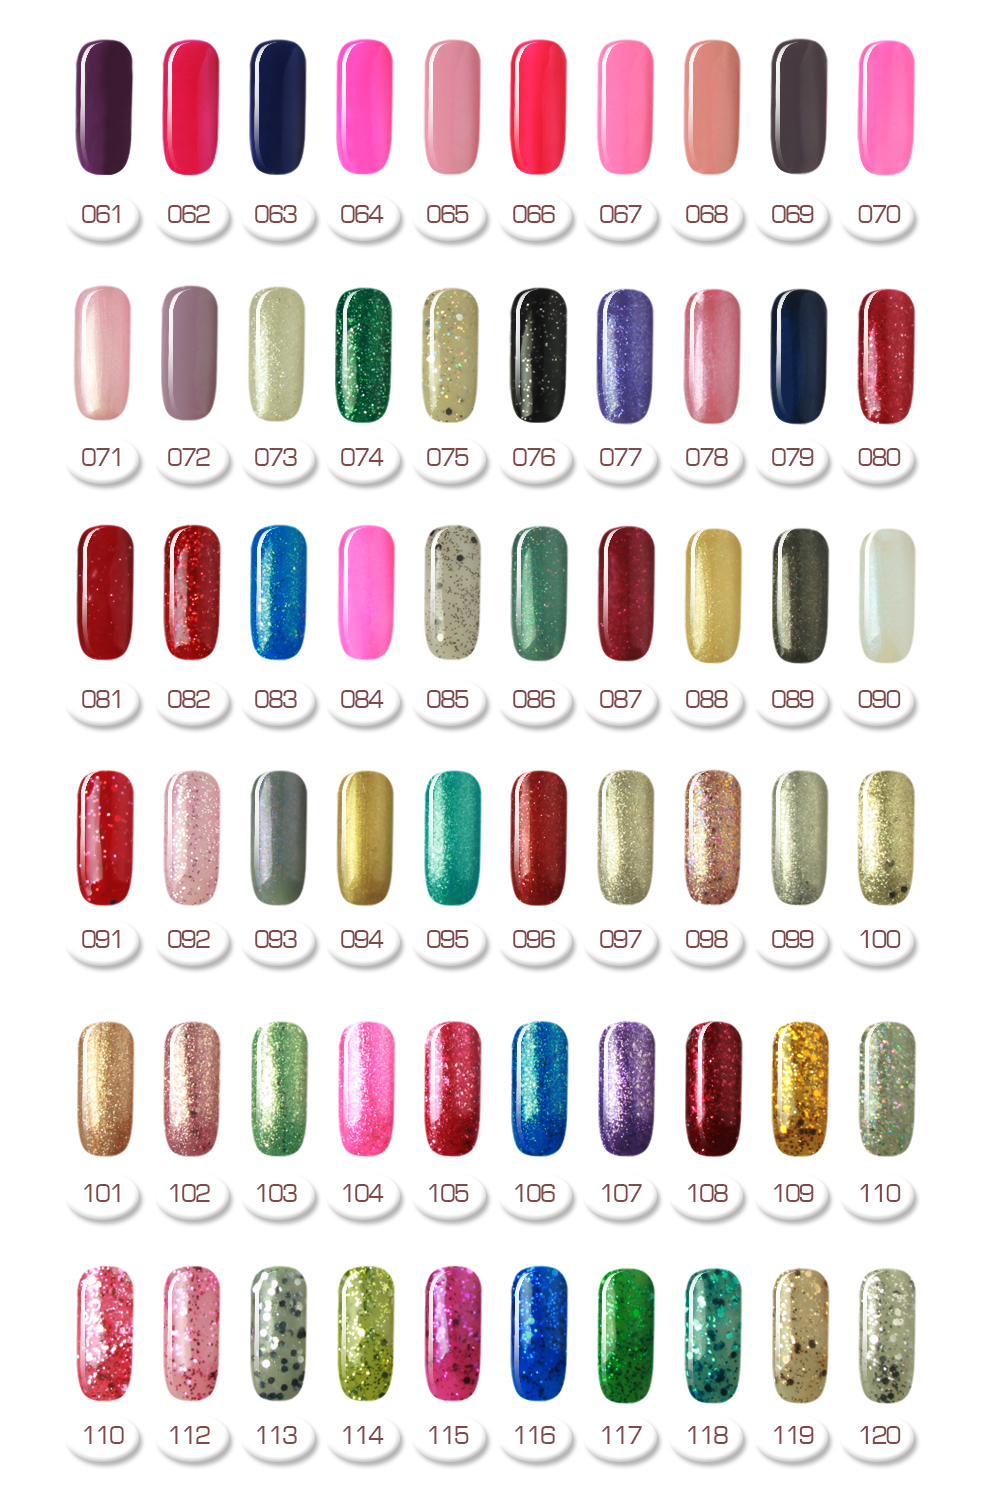 Global fashion professional soak off gel color nail art kit uv gel